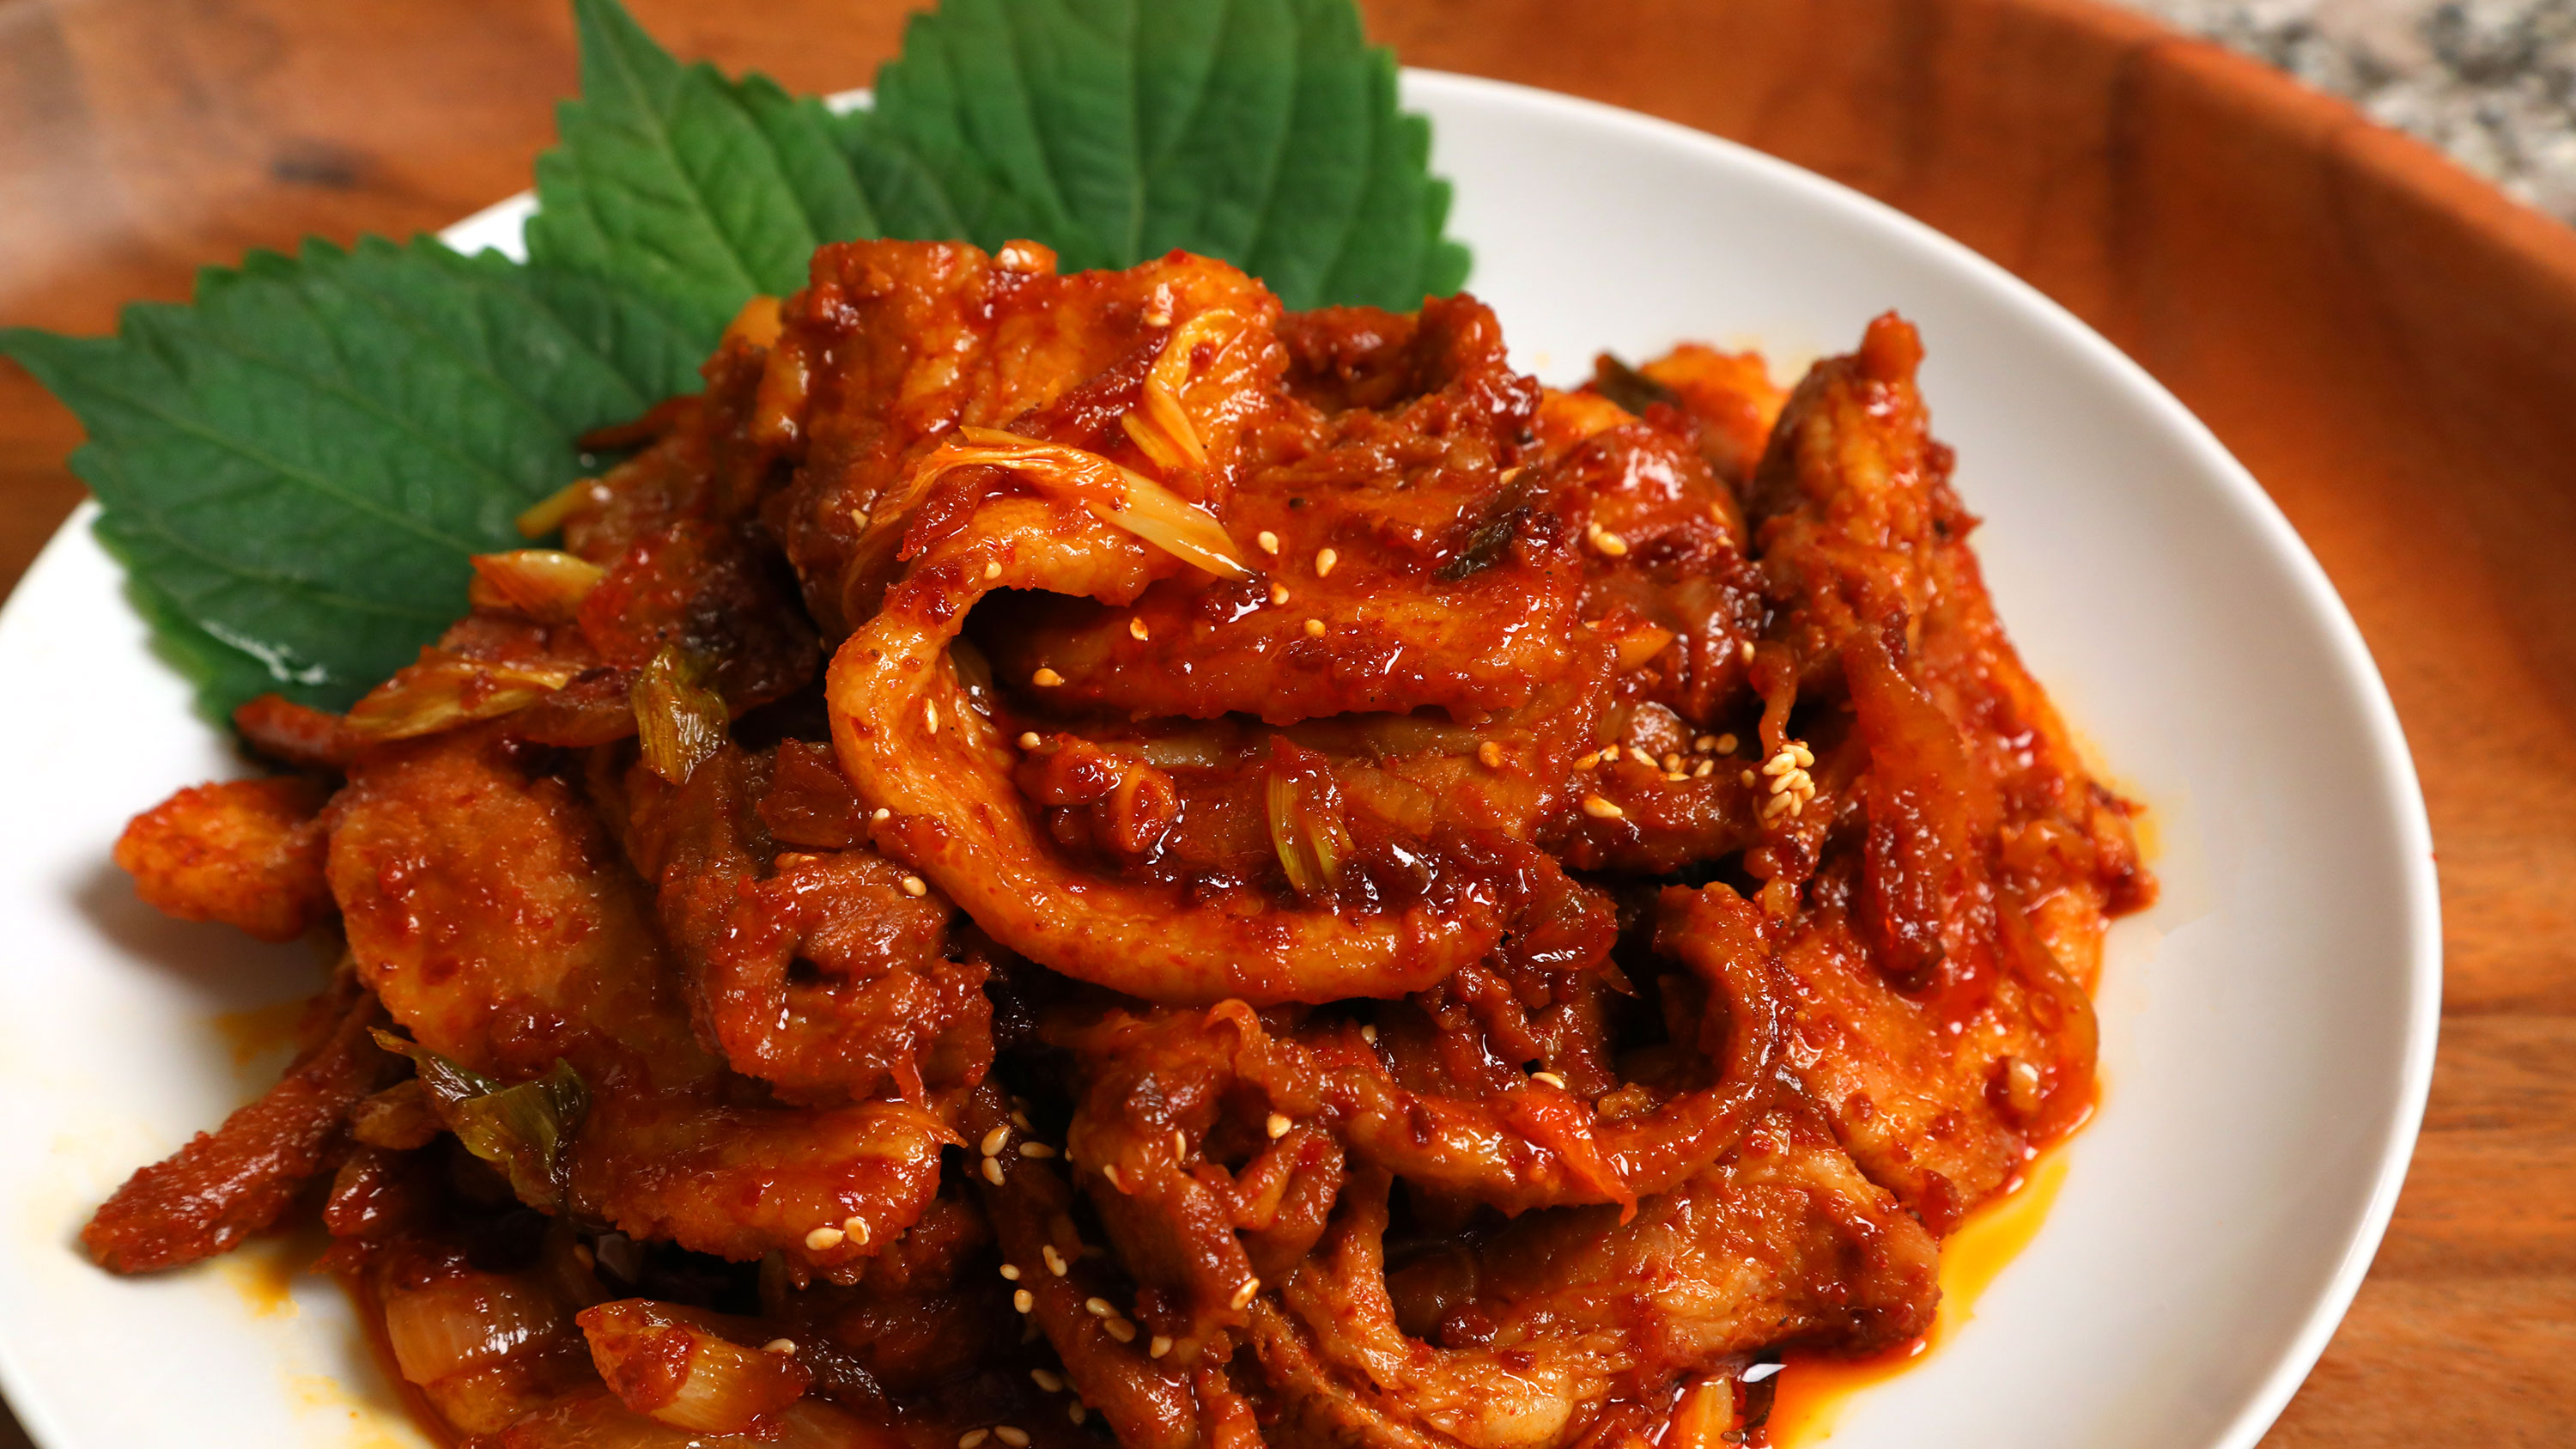 spicy stir fried pork dwaejigogi bokkeum recipe maangchi com